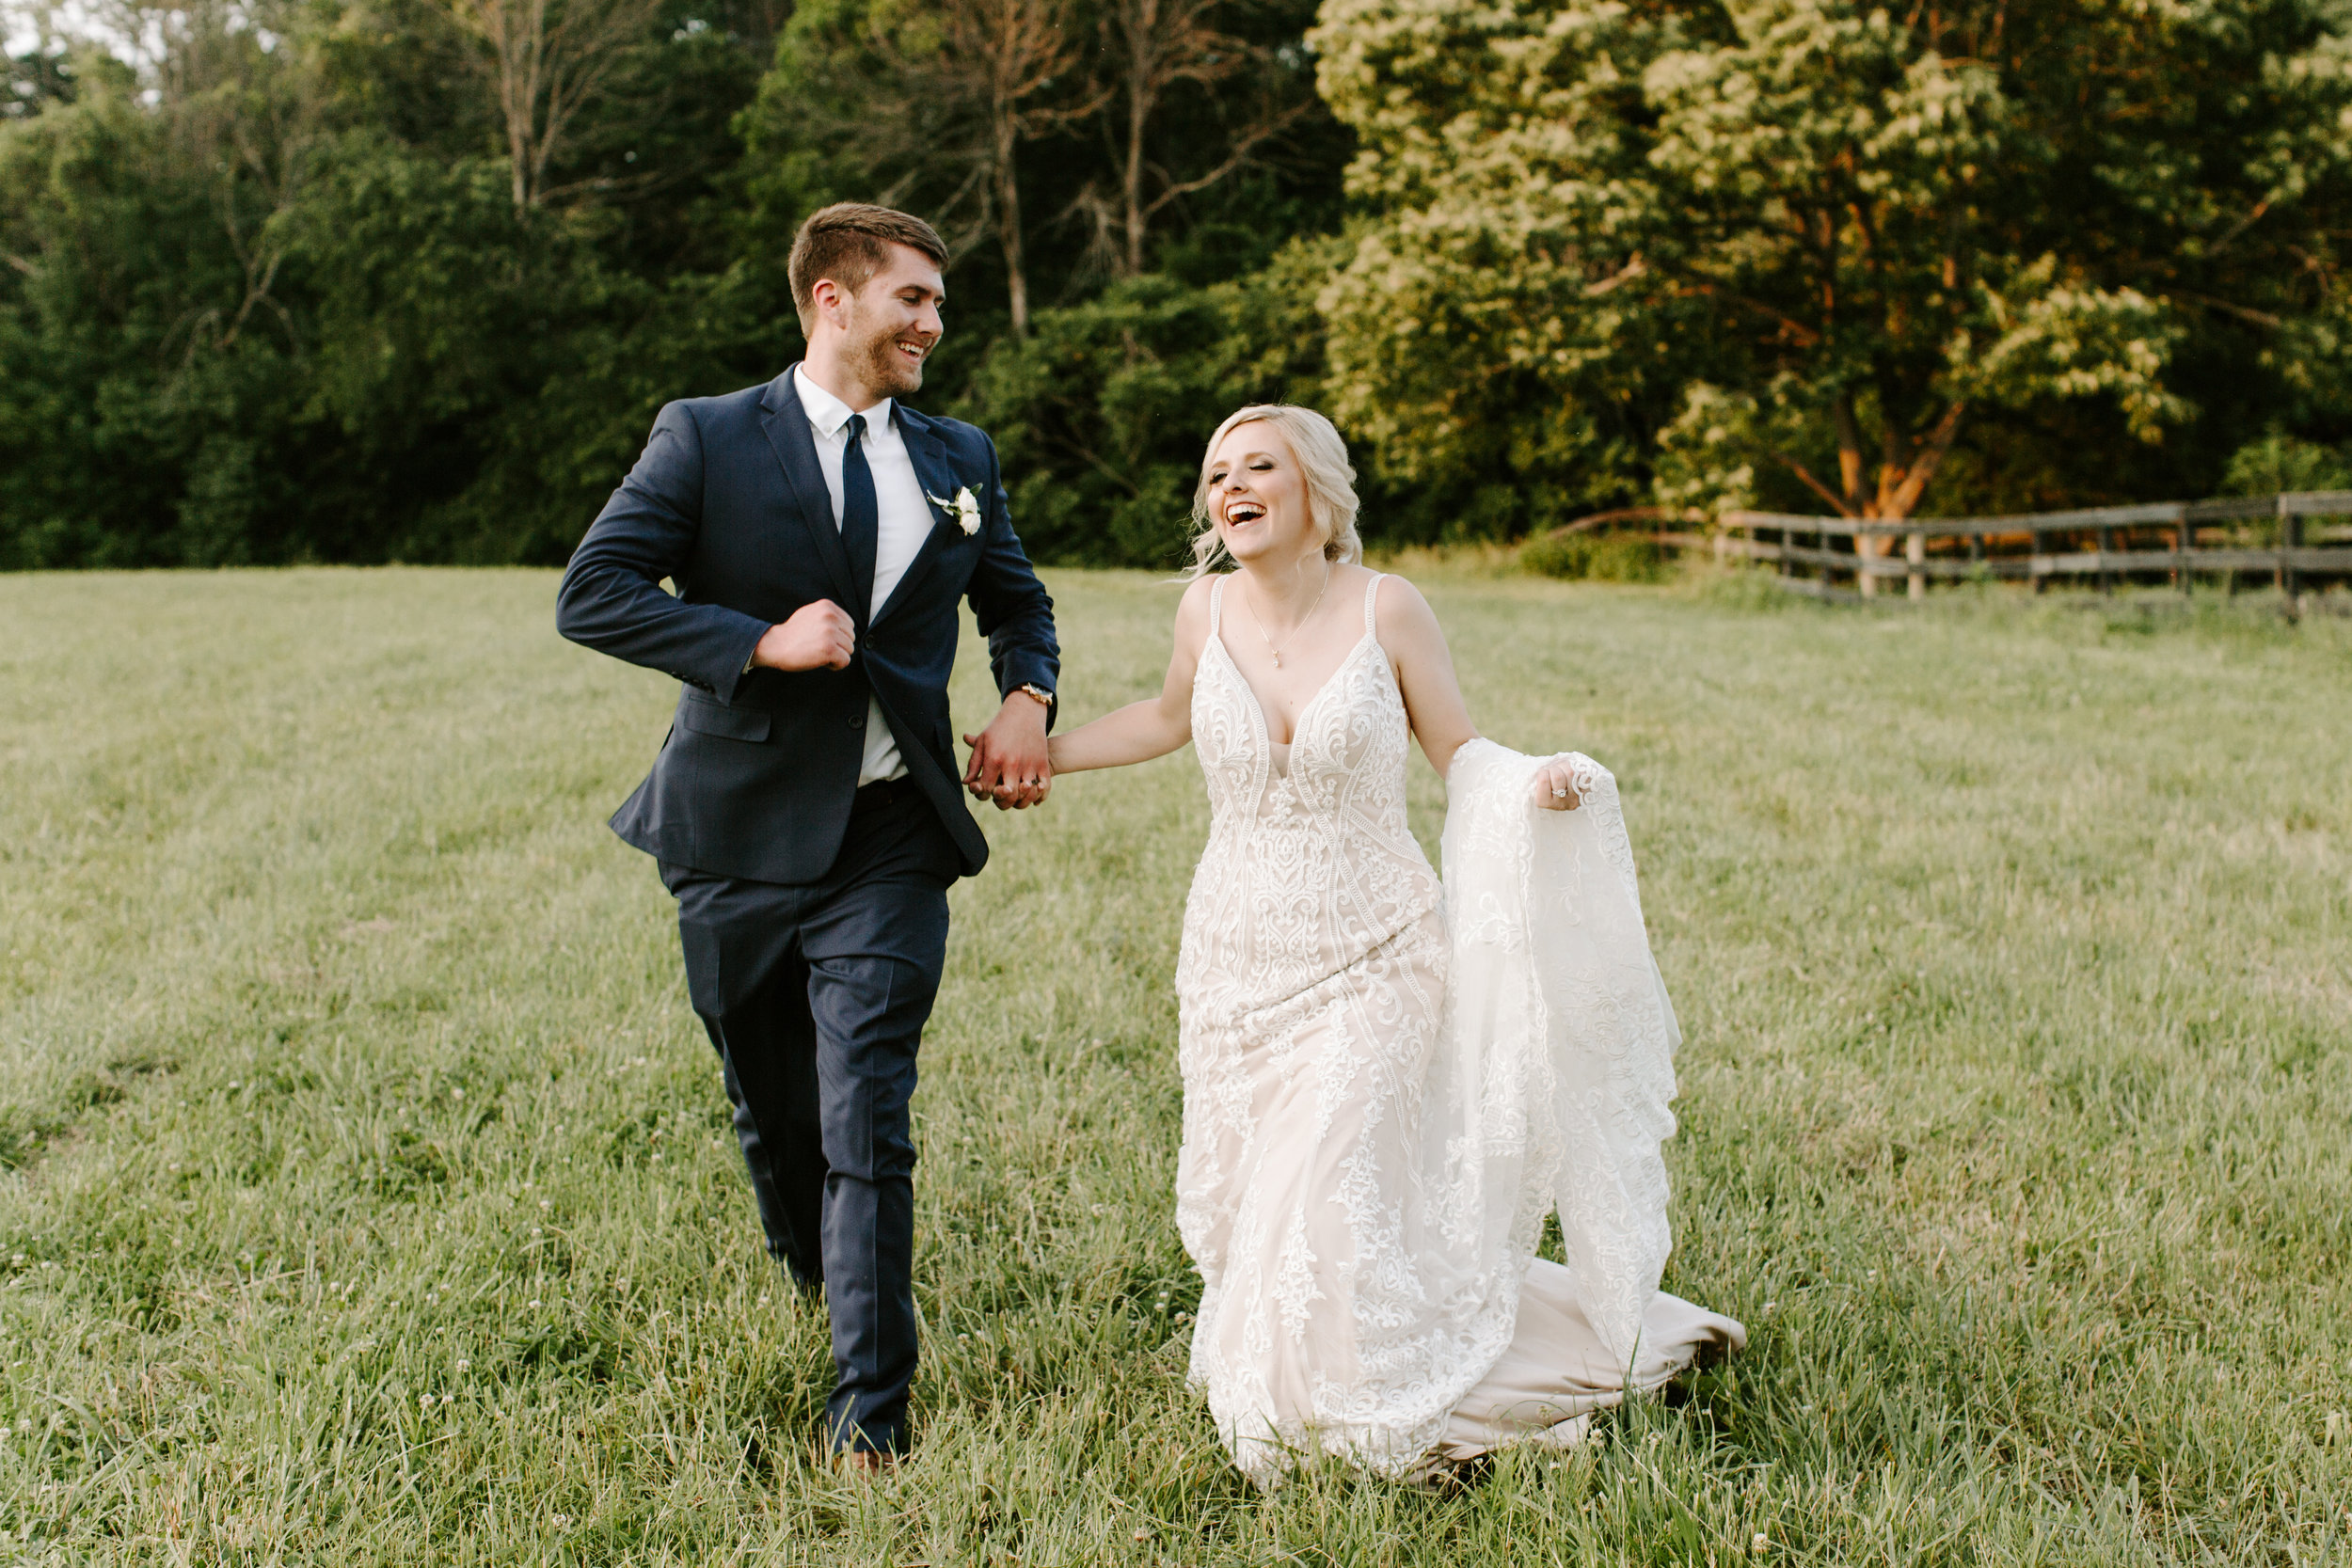 bride-and-groom-running-through-field.jpg